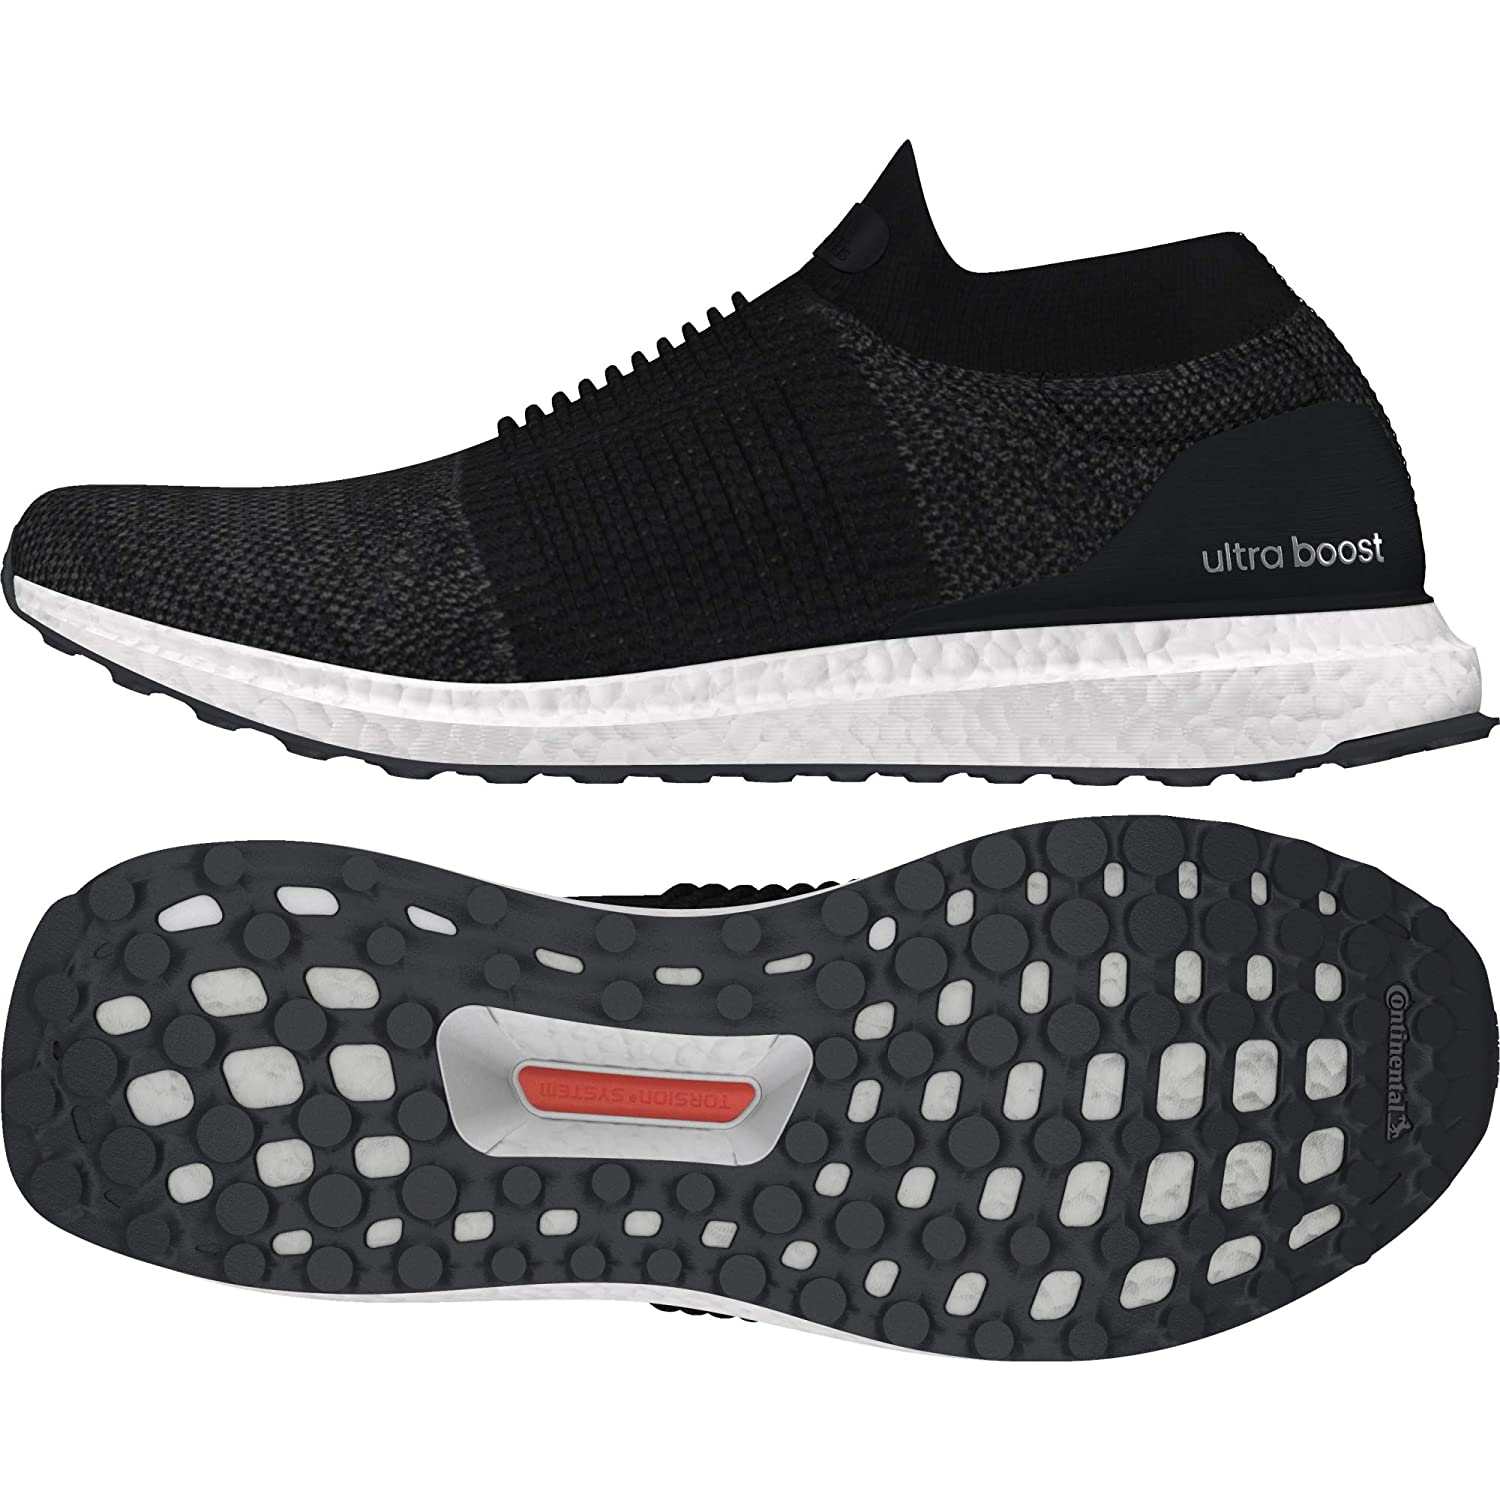 new concept 6200e a0a0b Adidas Women s Ultraboost Laceless W Cblack Running Shoes-8 UK India (42  EU) (BB6311)  Amazon.in  Shoes   Handbags